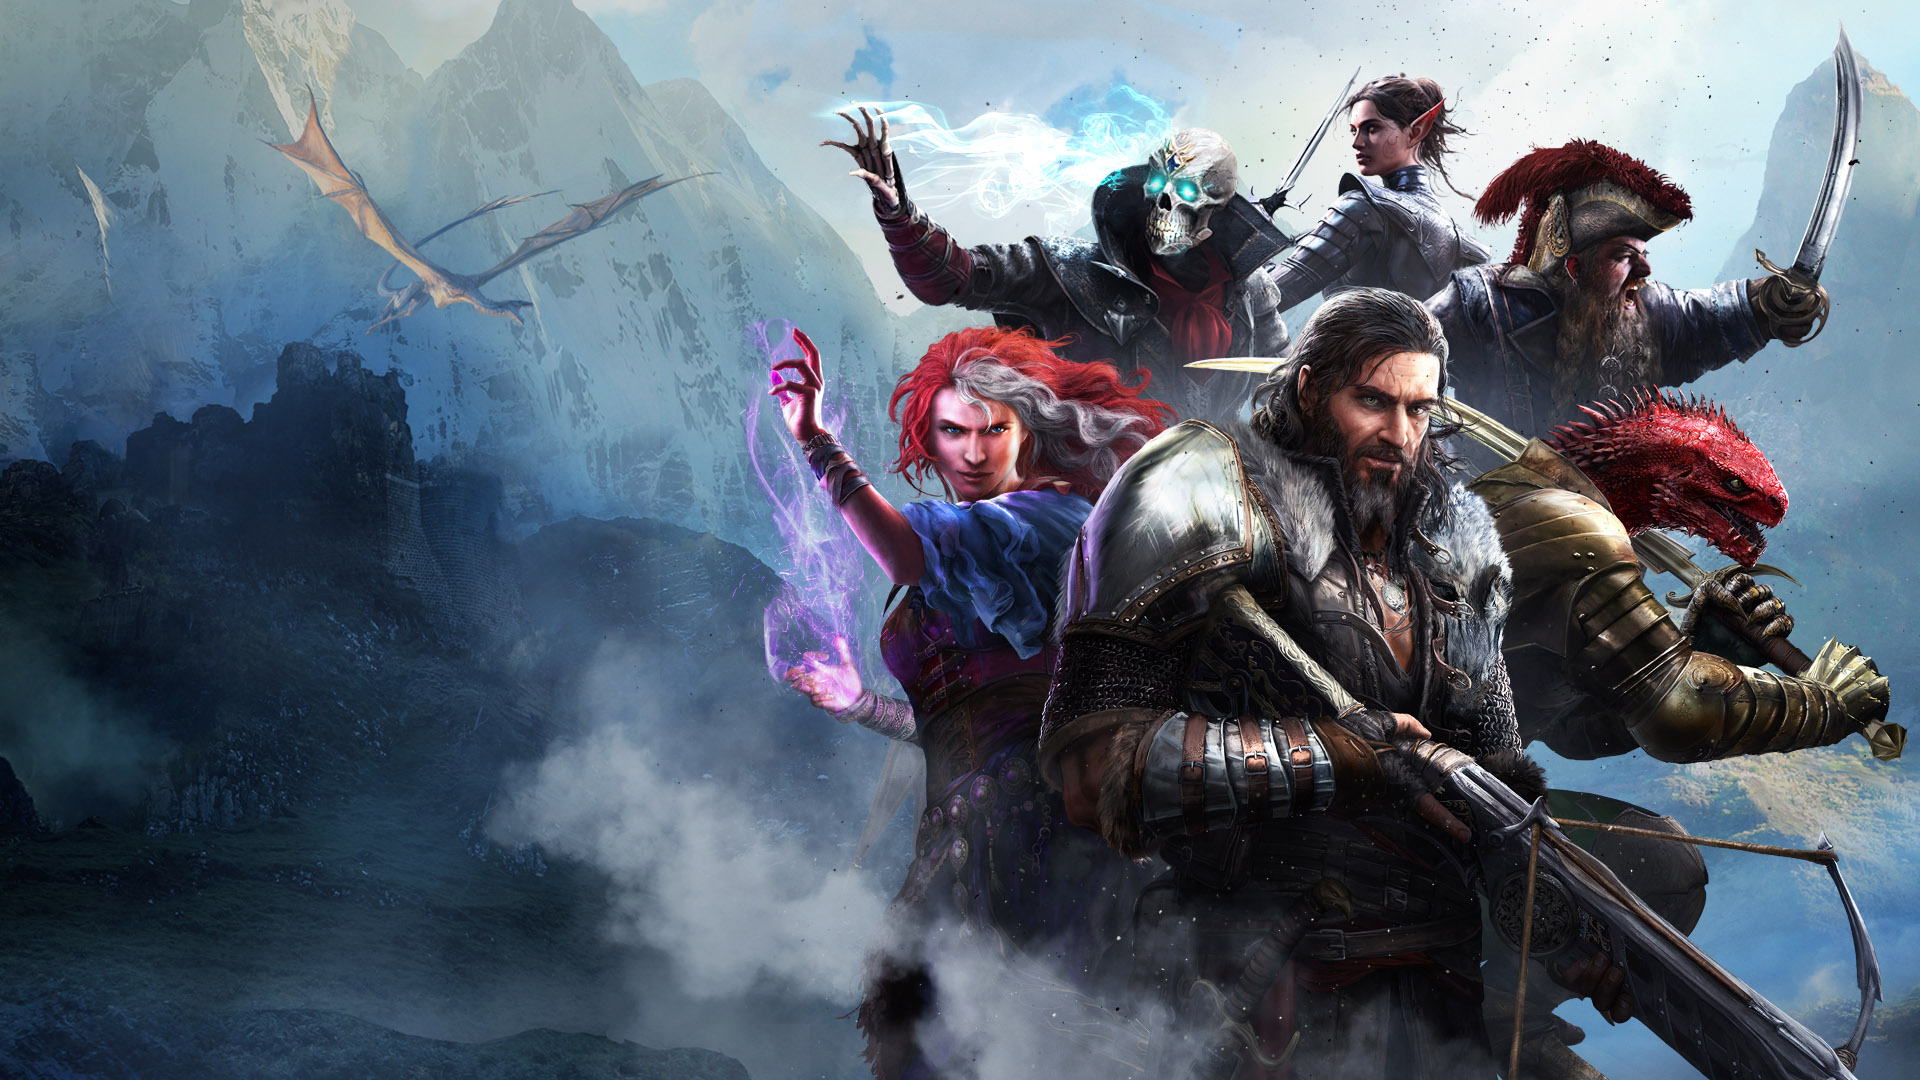 Wallpaper Video Game Divinity Divinity Original Sin 2 1920x1080 Download Hd Wallpaper Wallpapertip